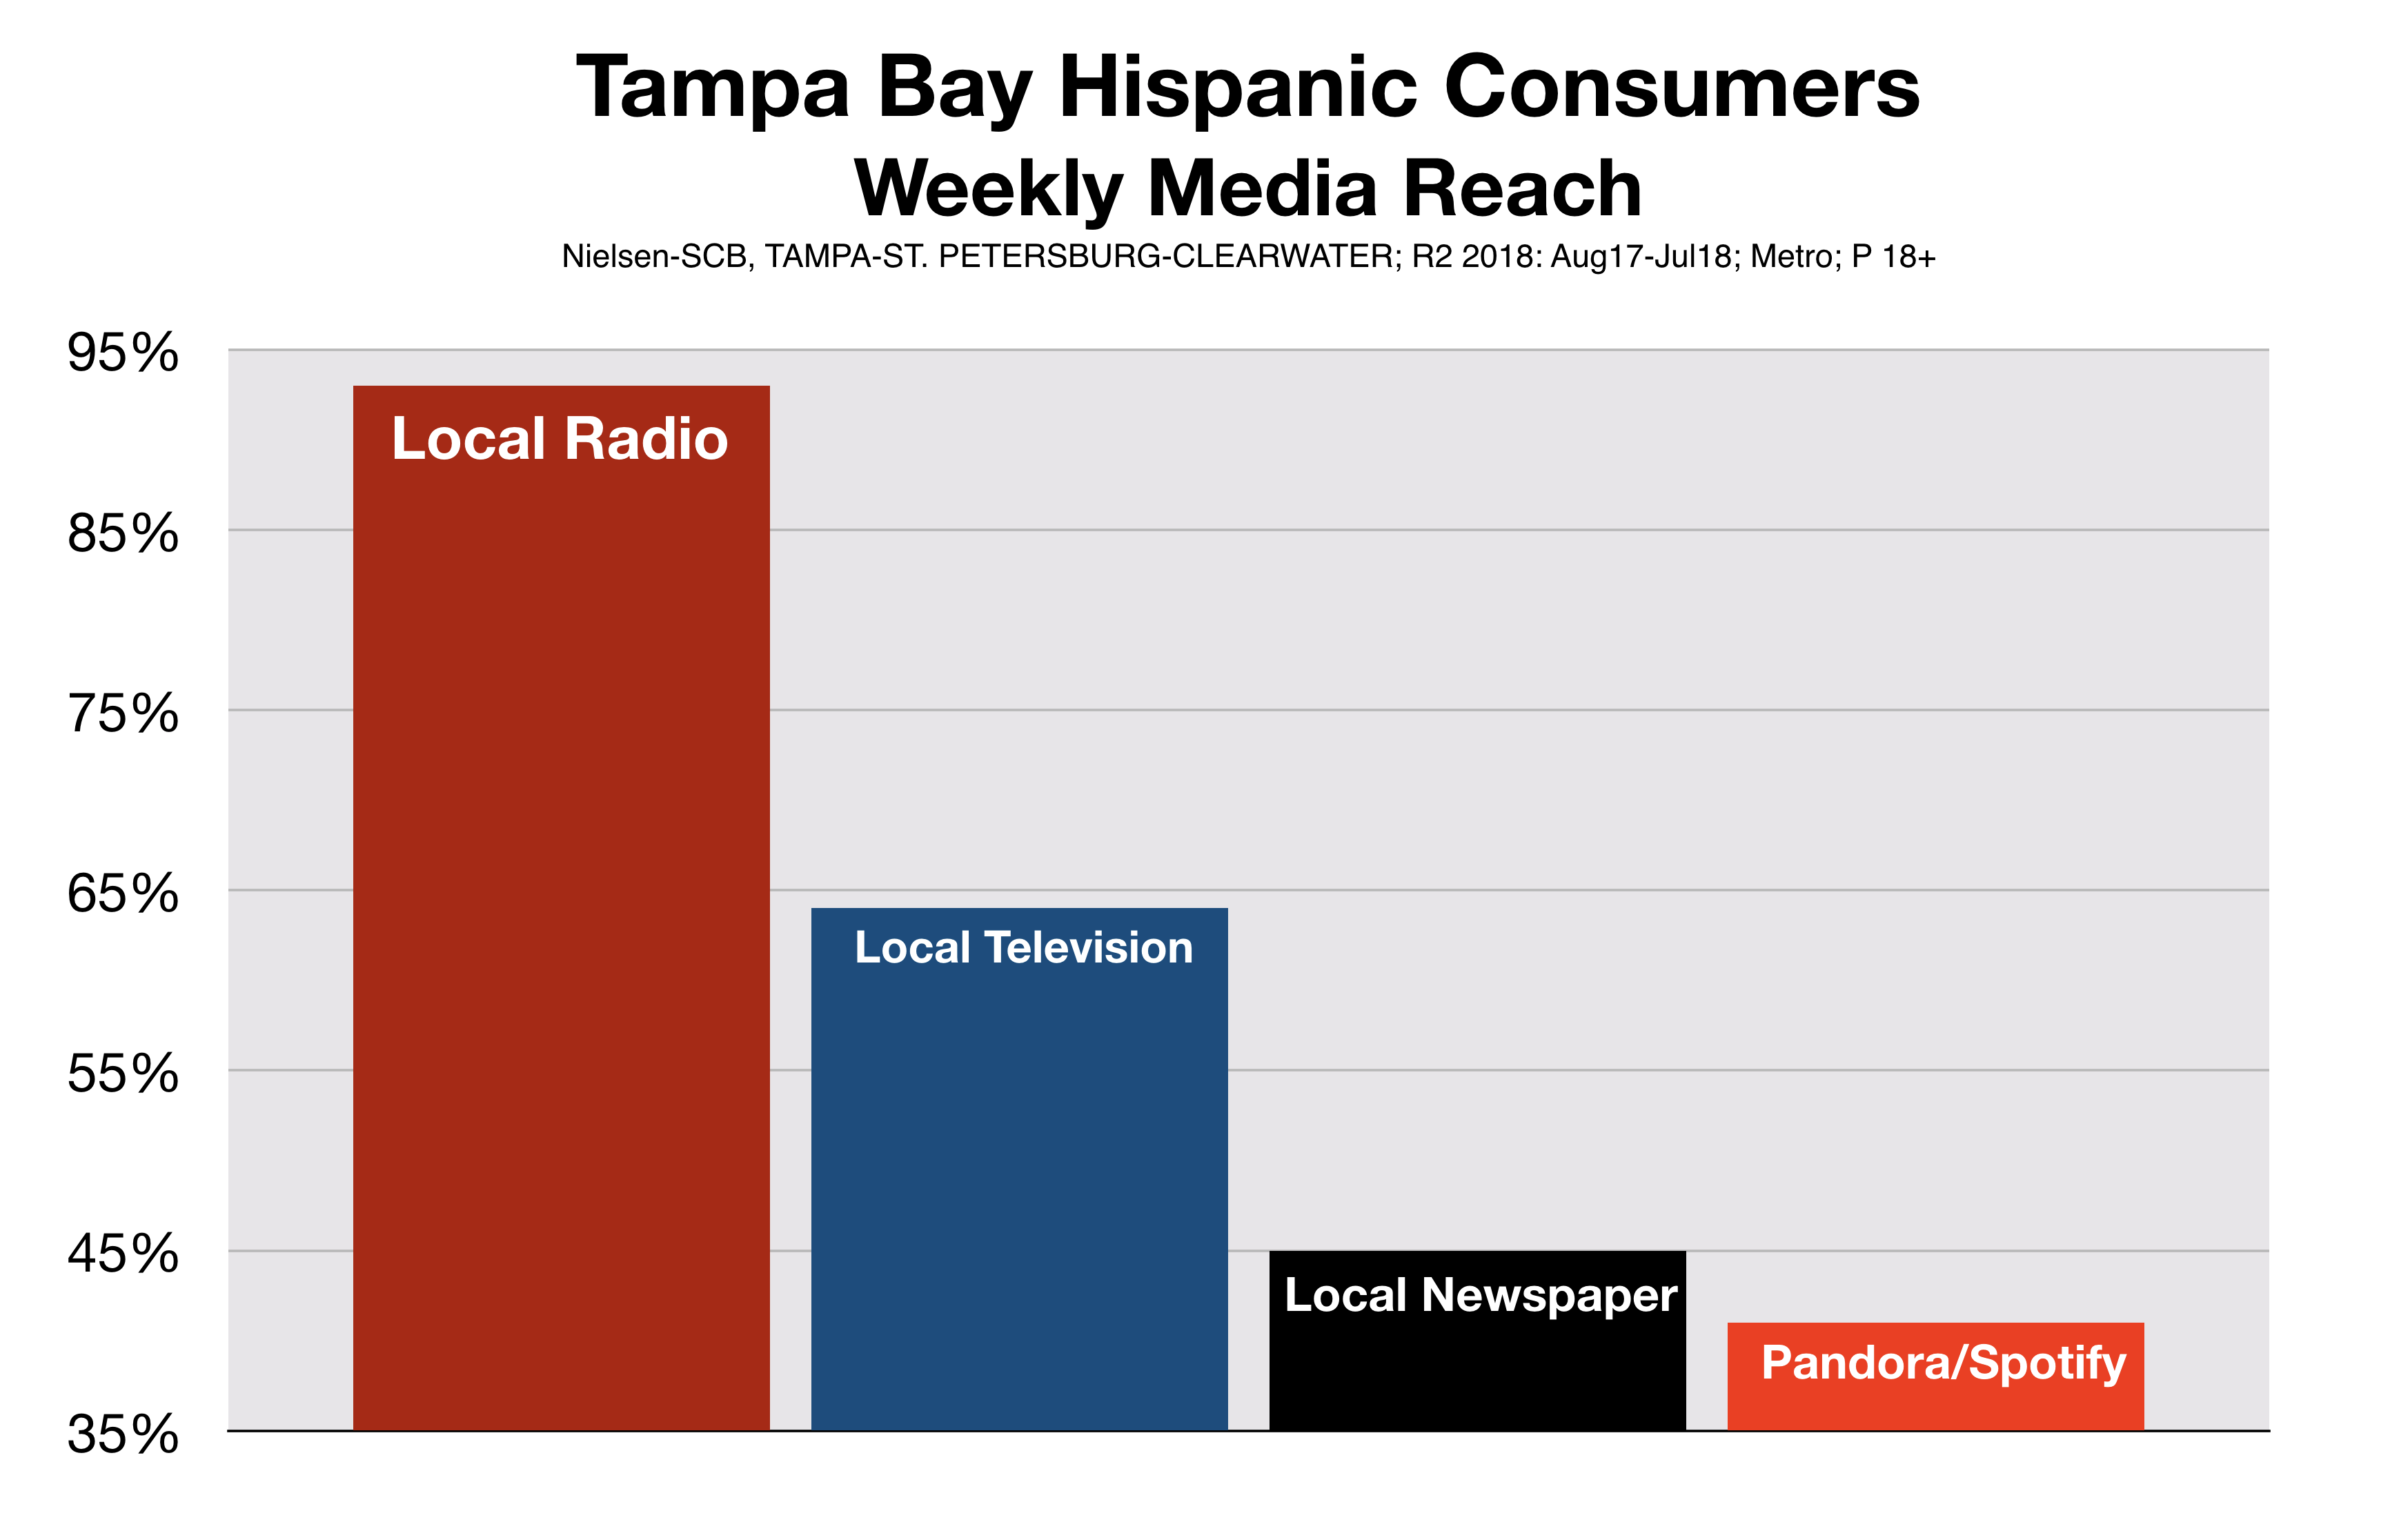 Hispanic Consumer Reach Advertising in Tampa Bay